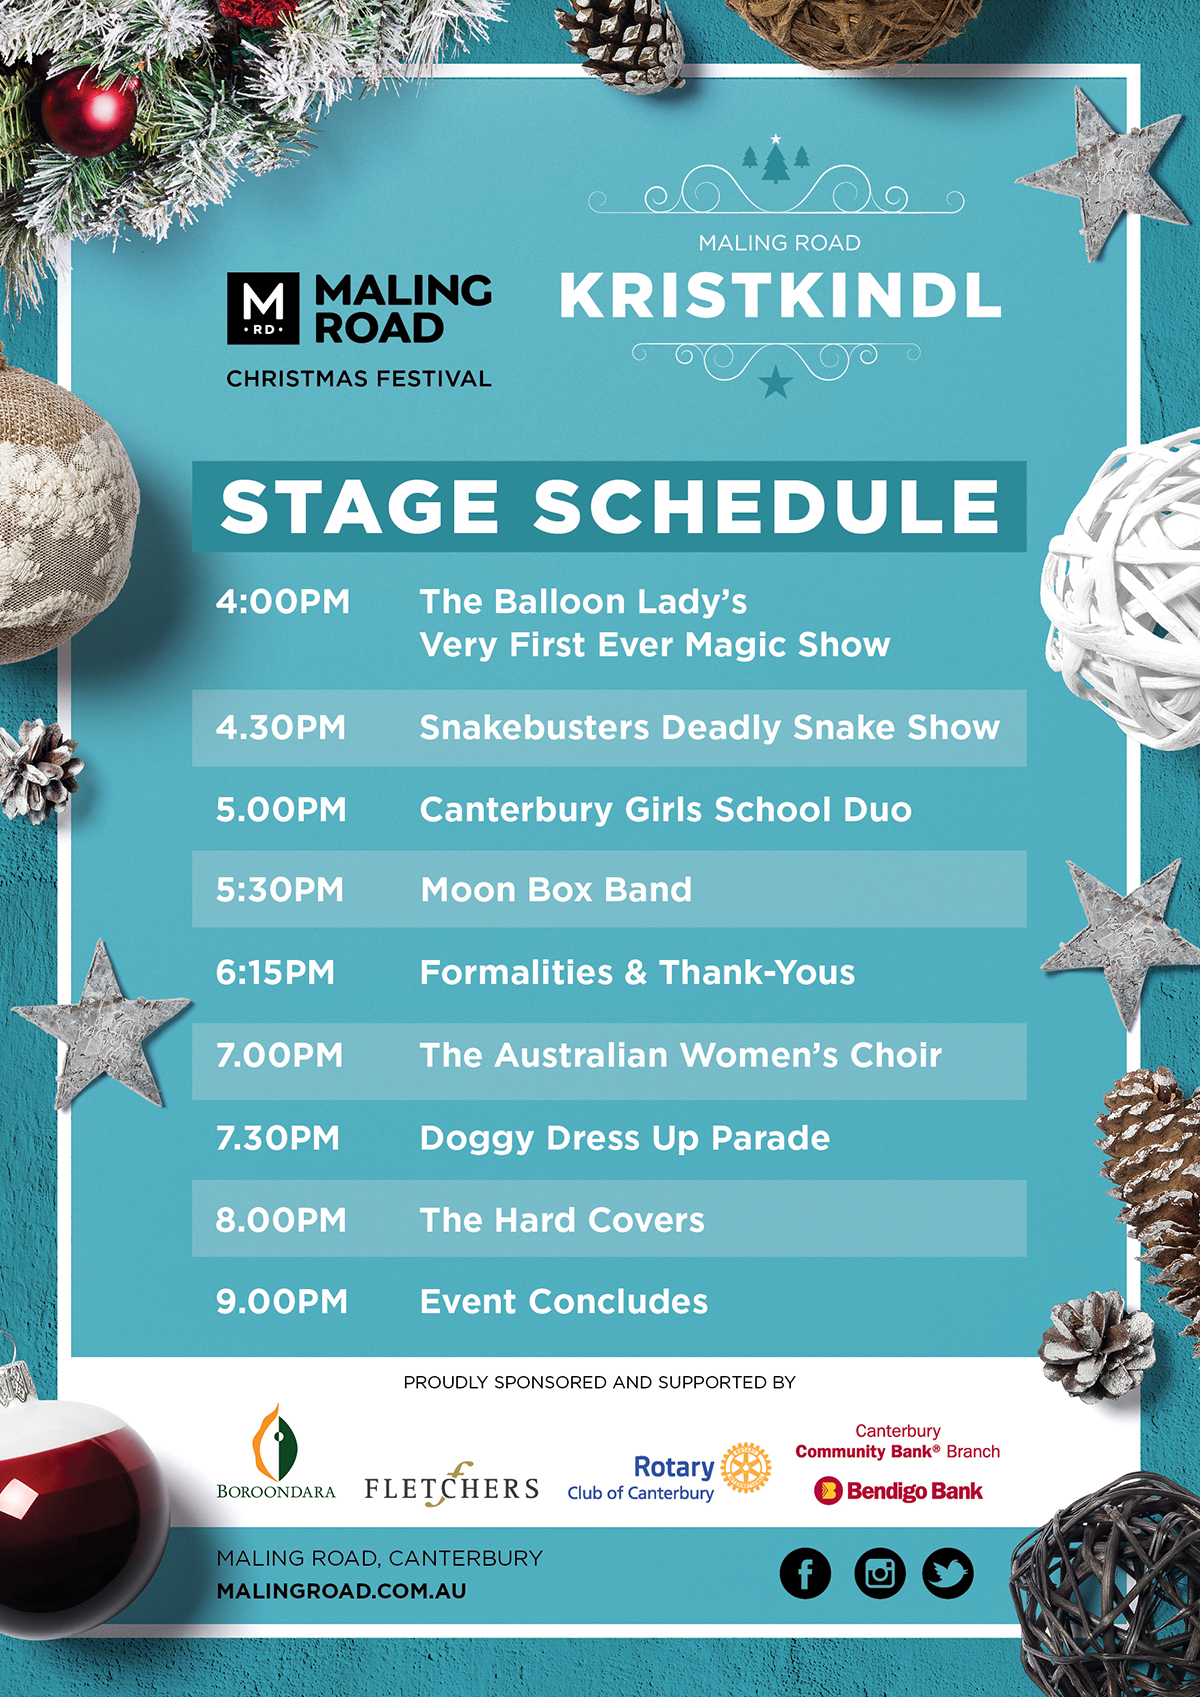 Maling Road Christmas Festival Kristkindl Stage Schedule